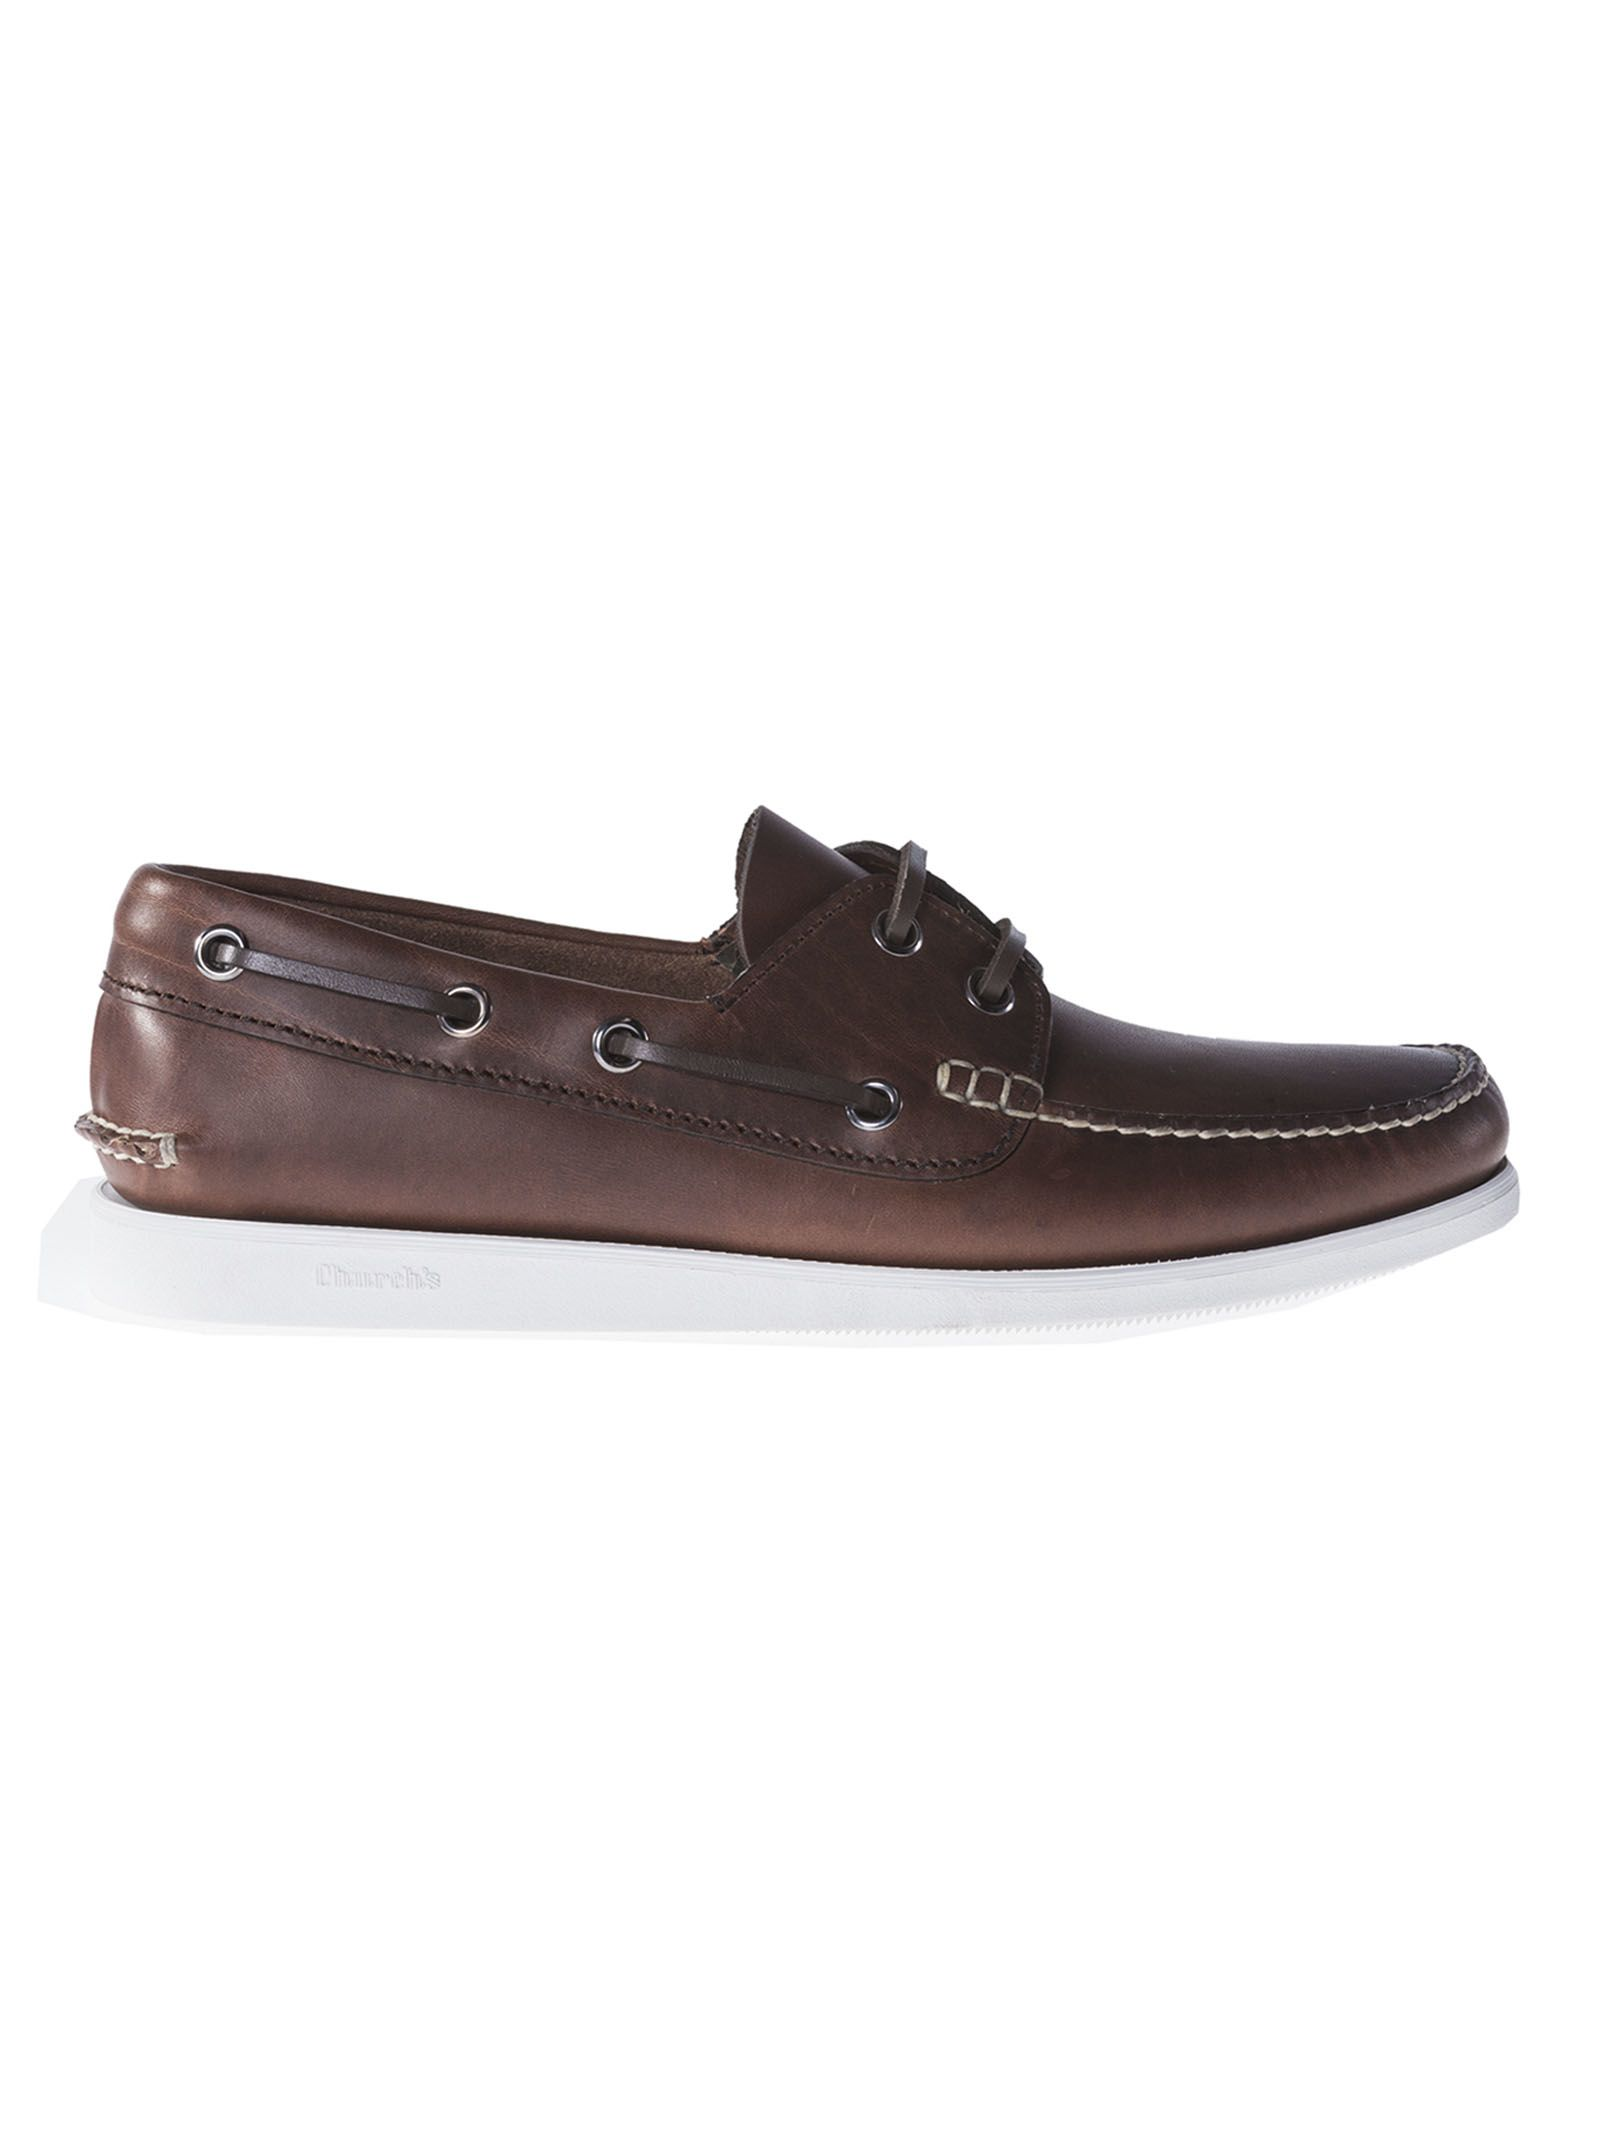 Churchs Lace-up Boat Shoes